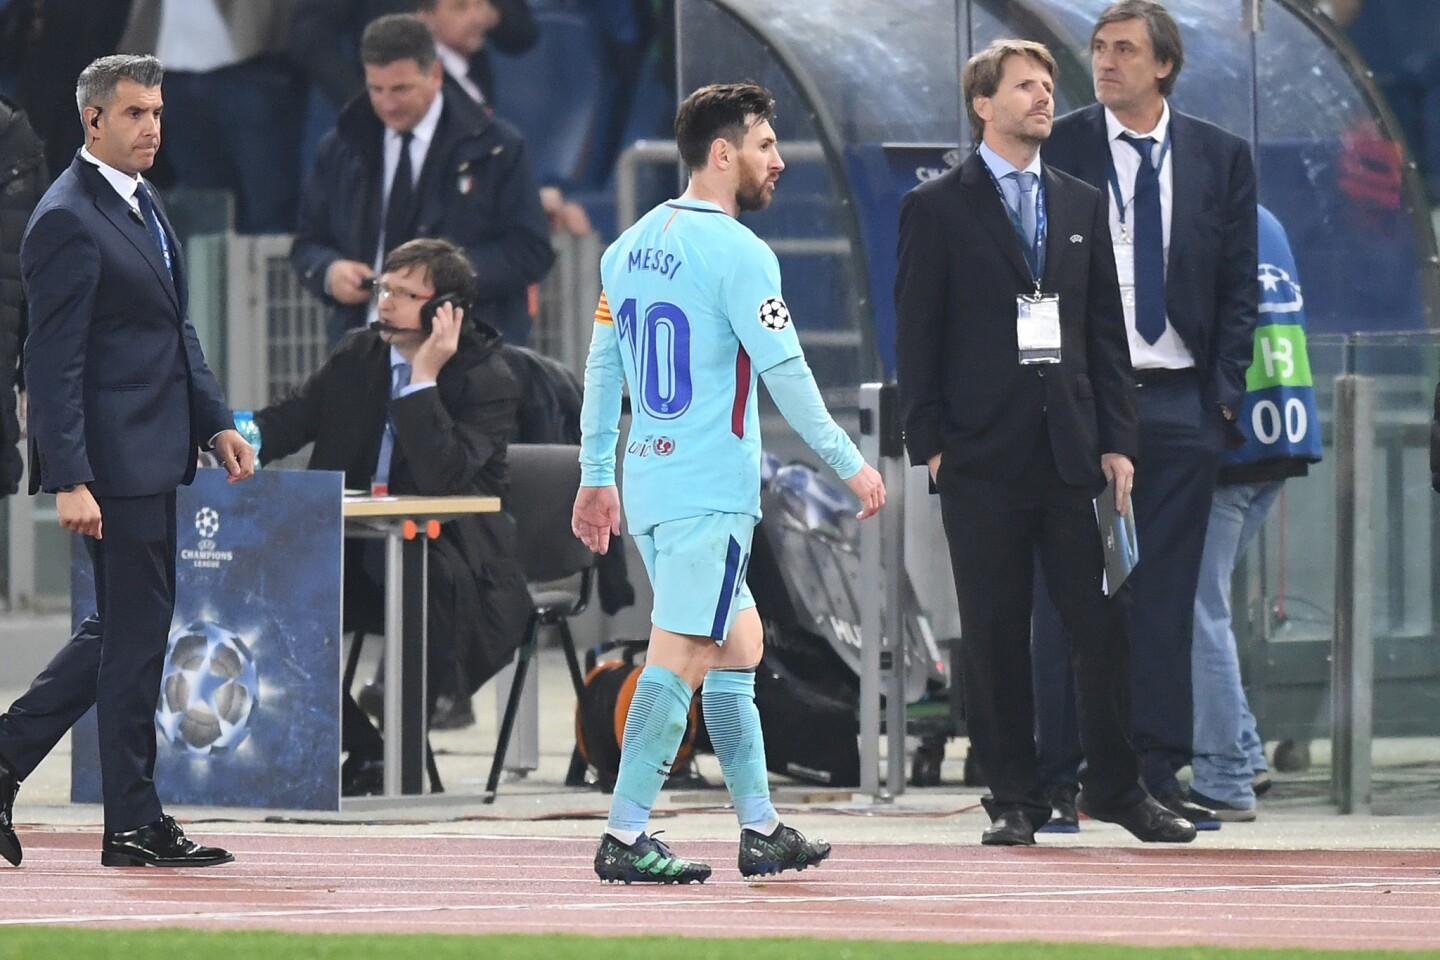 ROME, ITALY - APRIL 10: Lionel Messi of Barcelona walks off the pitch after the UEFA Champions League Quarter Final Second Leg match between AS Roma and FC Barcelona at Stadio Olimpico on April 10, 2018 in Rome, Italy.